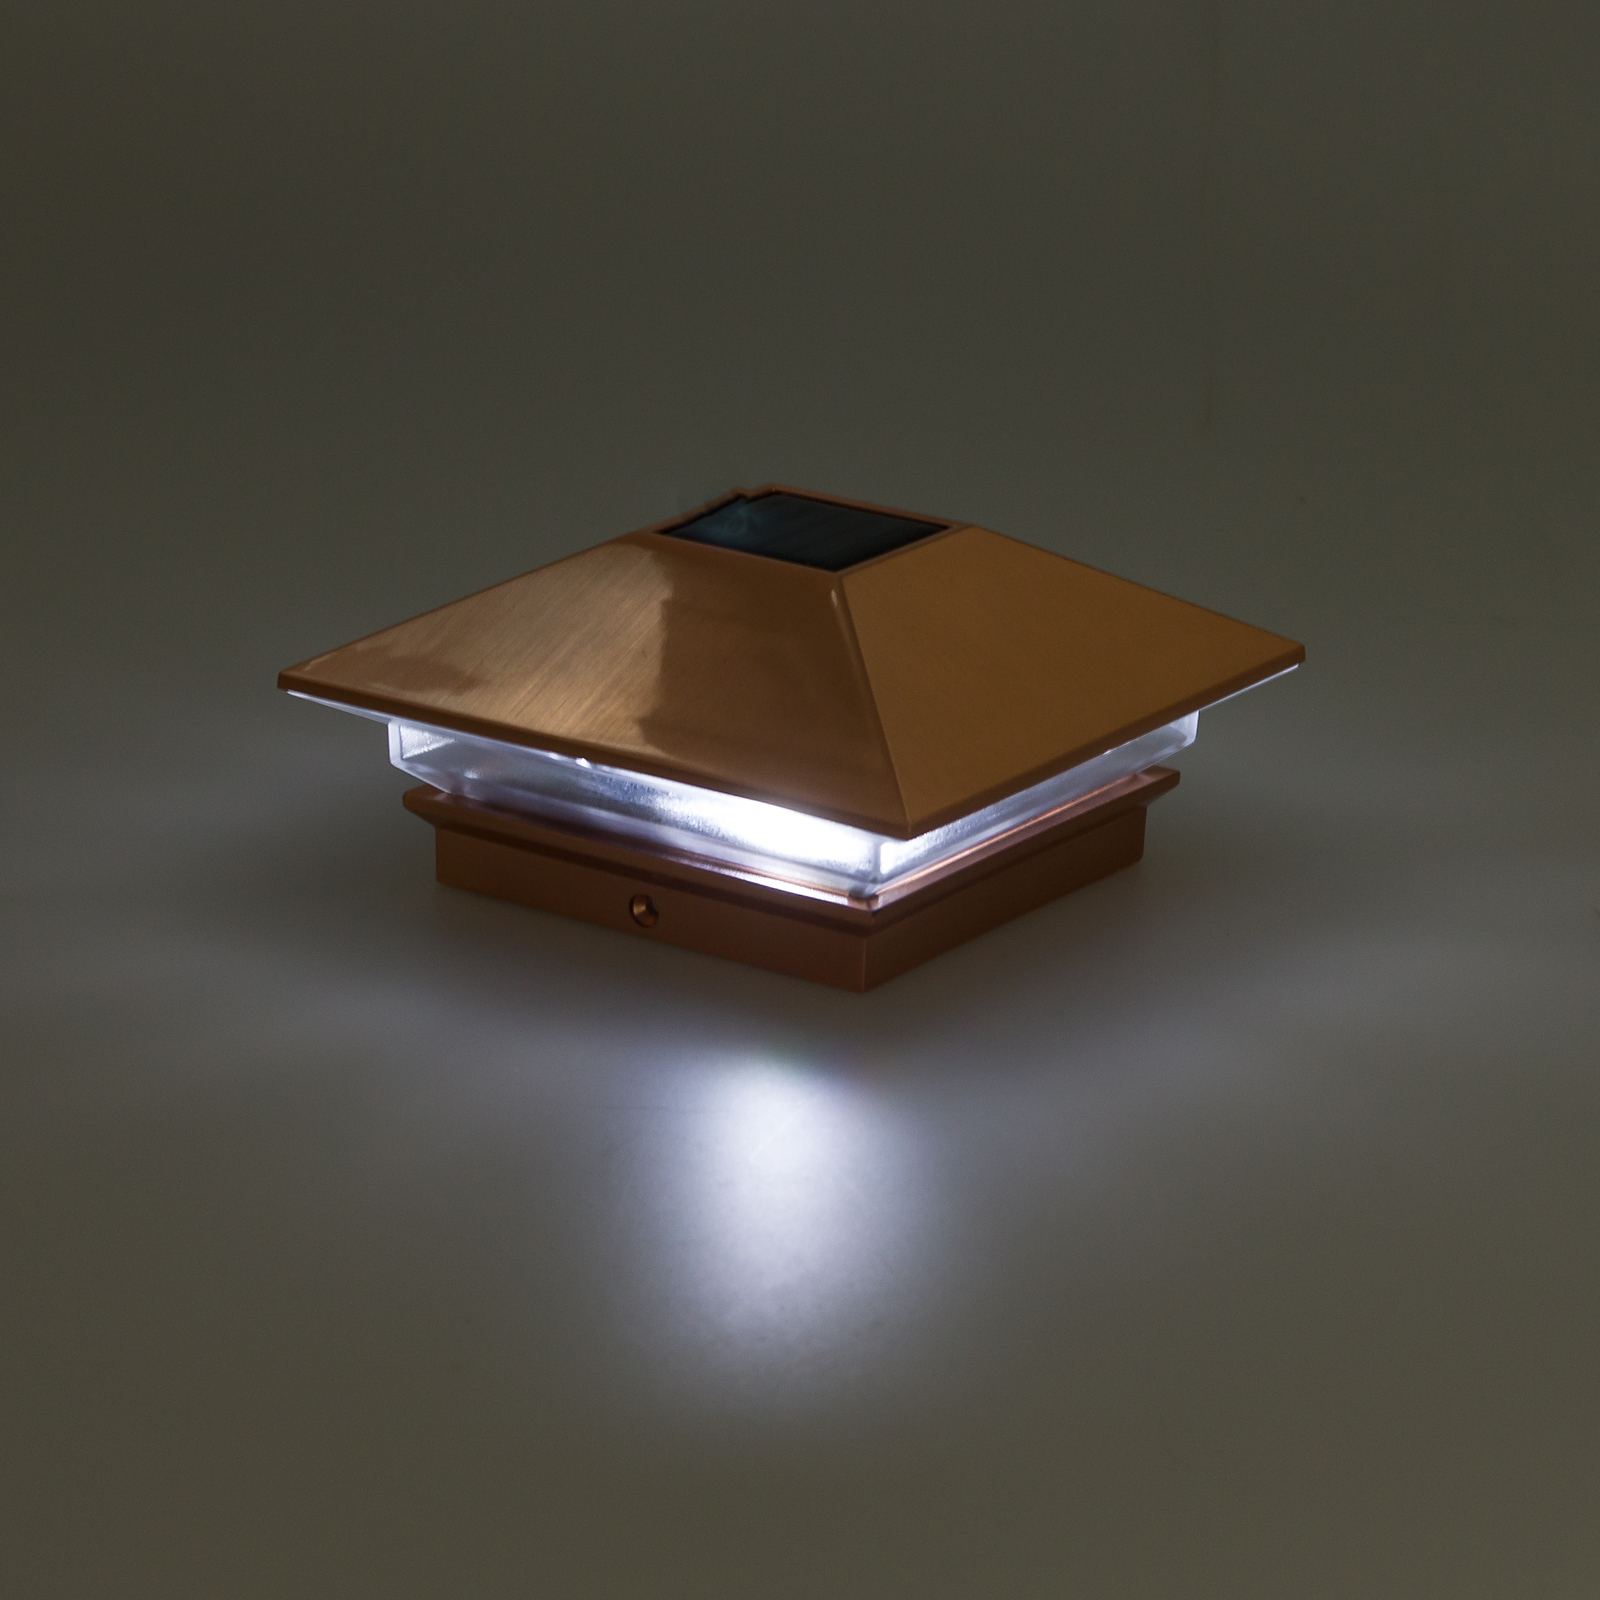 Greenlighting nominal 4x4 slim led solar post cap light for wood picture 10 of 14 mozeypictures Choice Image